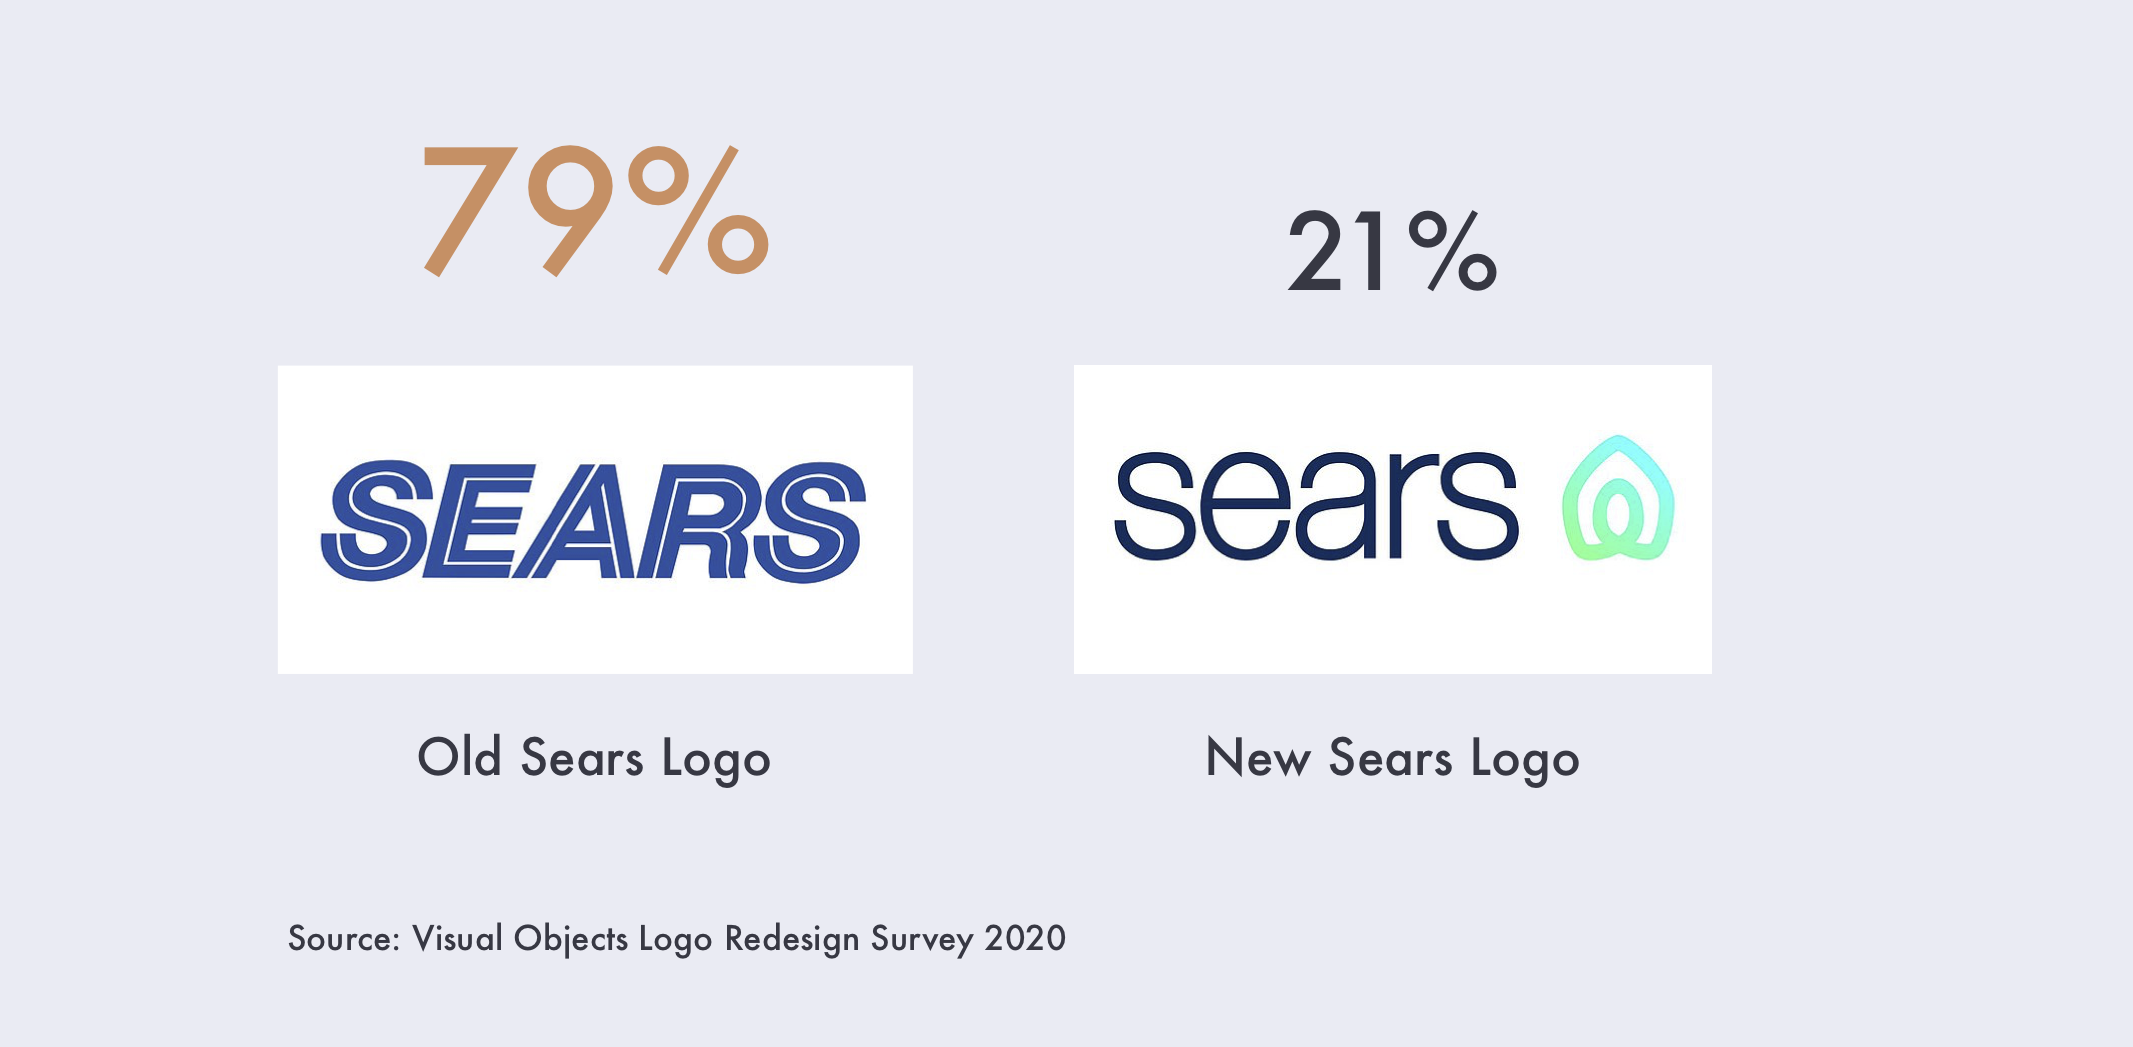 79% prefer sears old logo